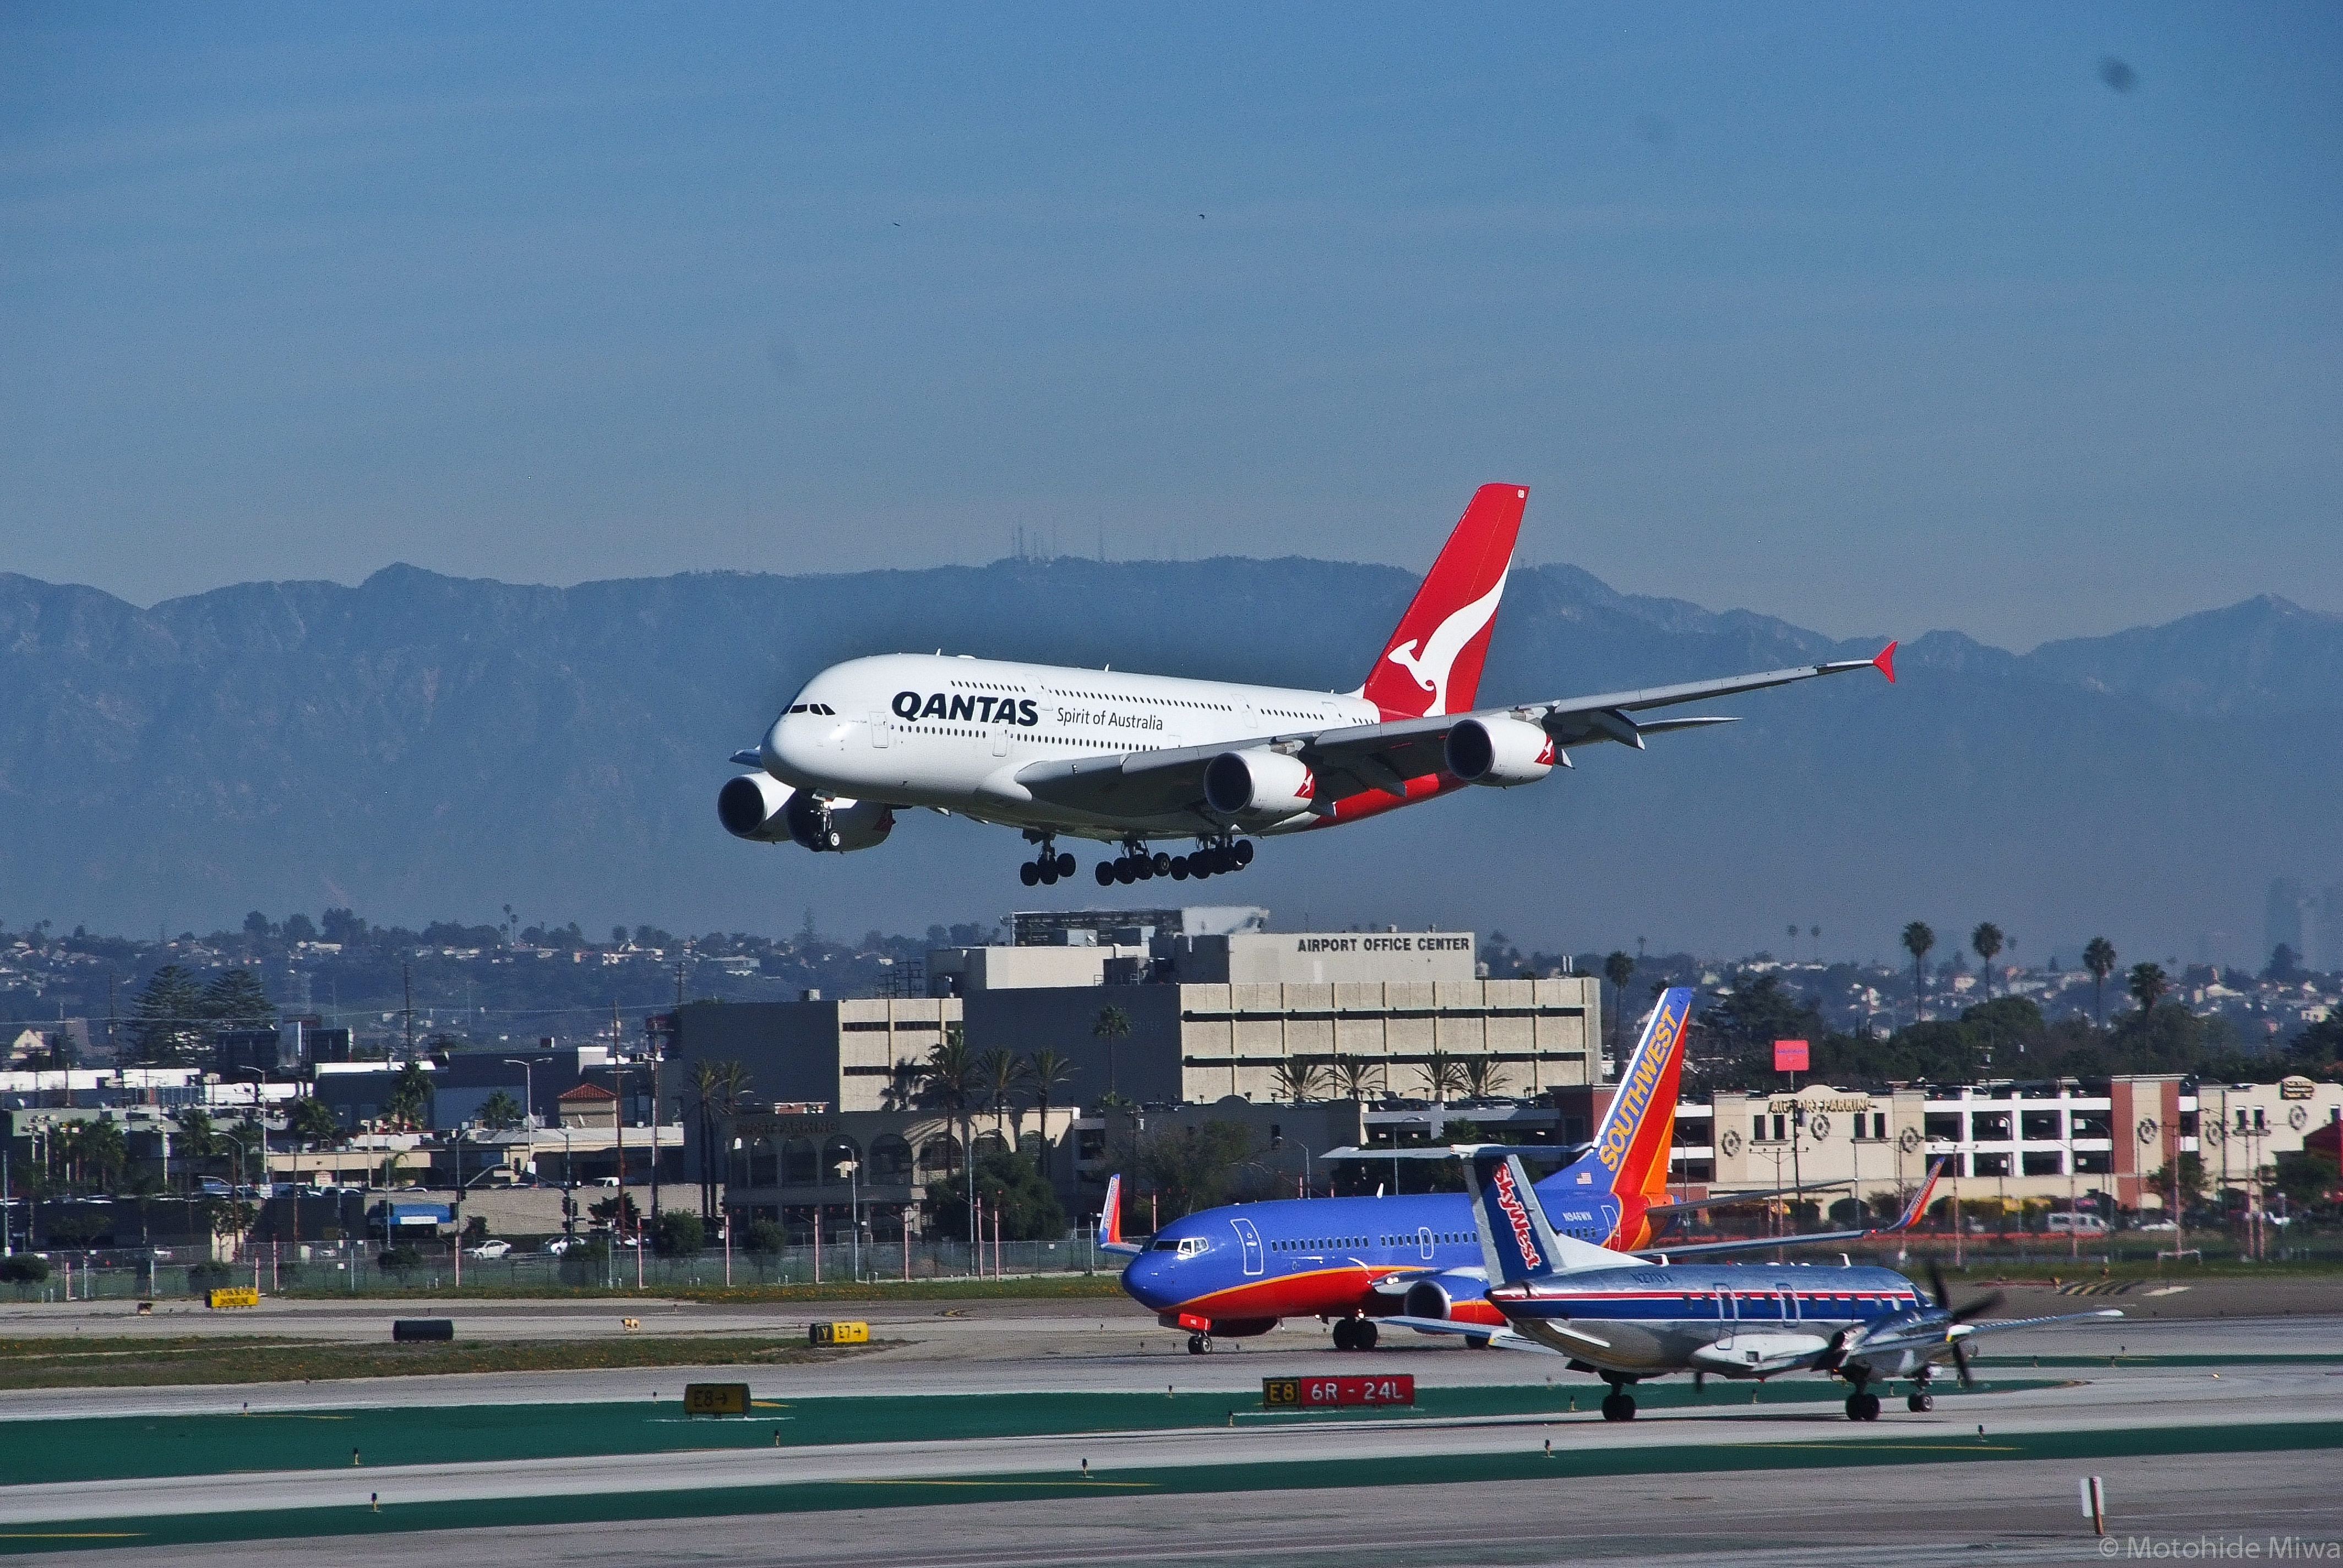 Lax Airport To Long Beach Port